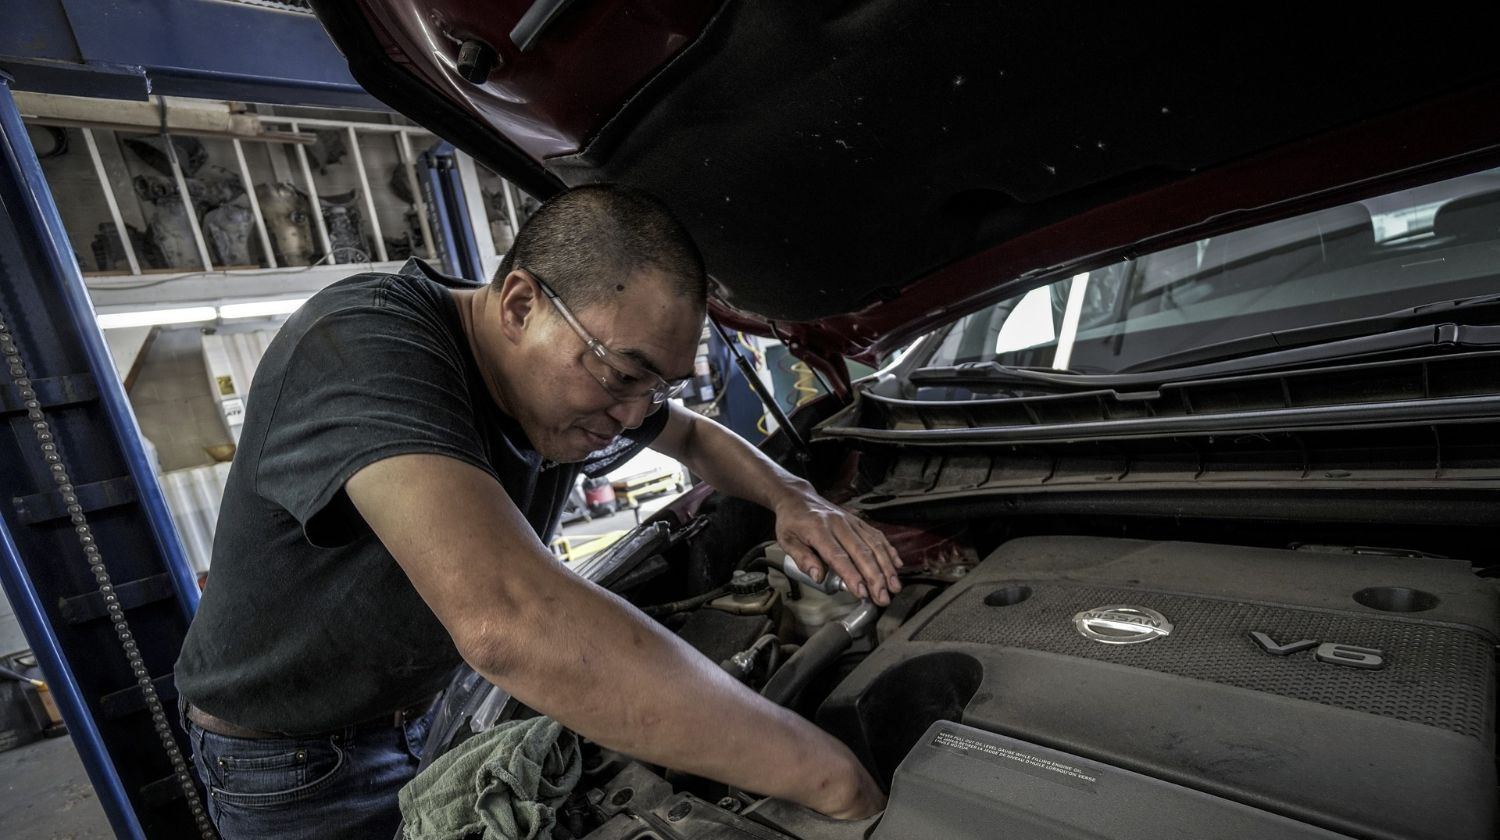 5 Essential Car Care Tools For DIY Auto Repair ...